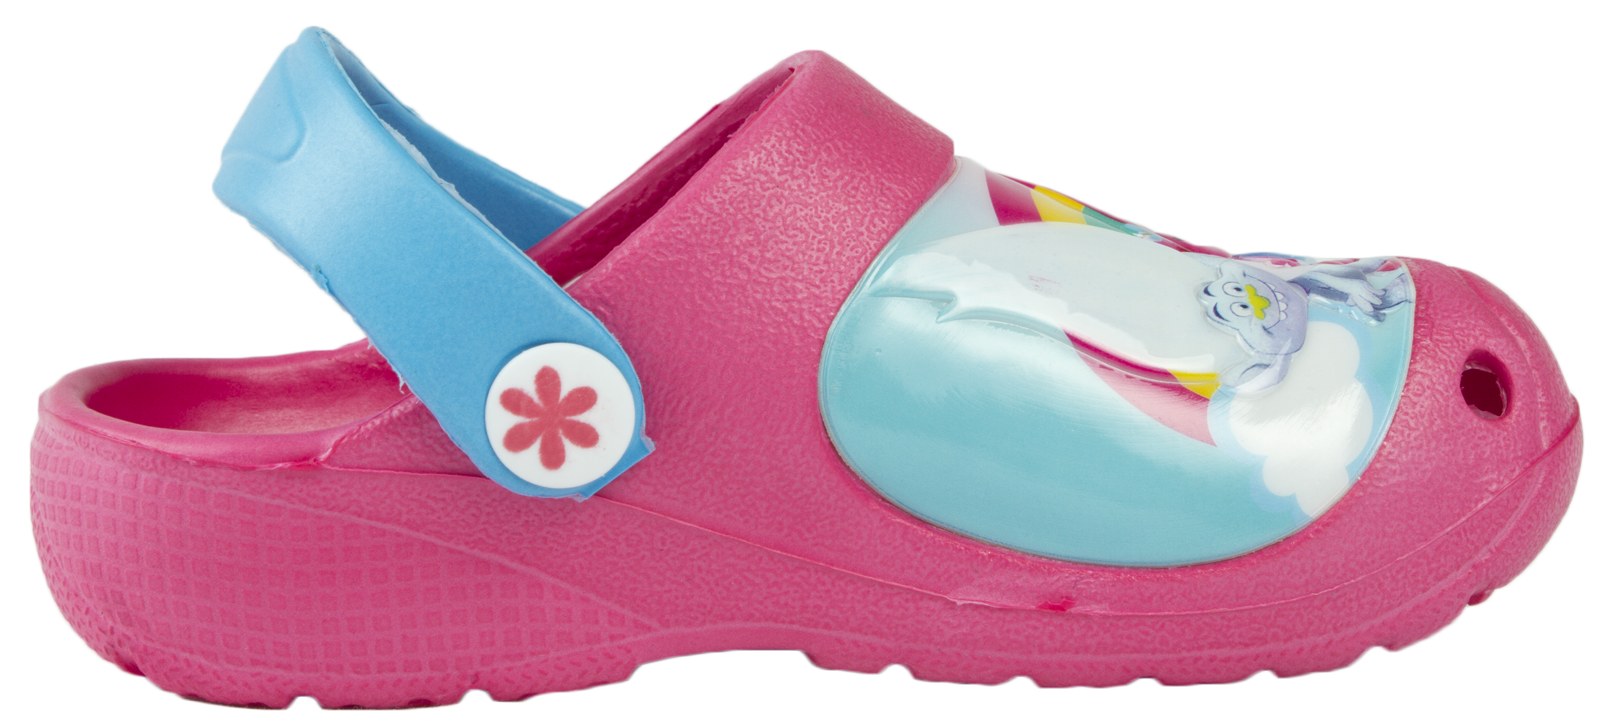 Trolls Clogs Pink Beach Sandals Flat Holiday Shoes Summer Mules Poppy Kids Size